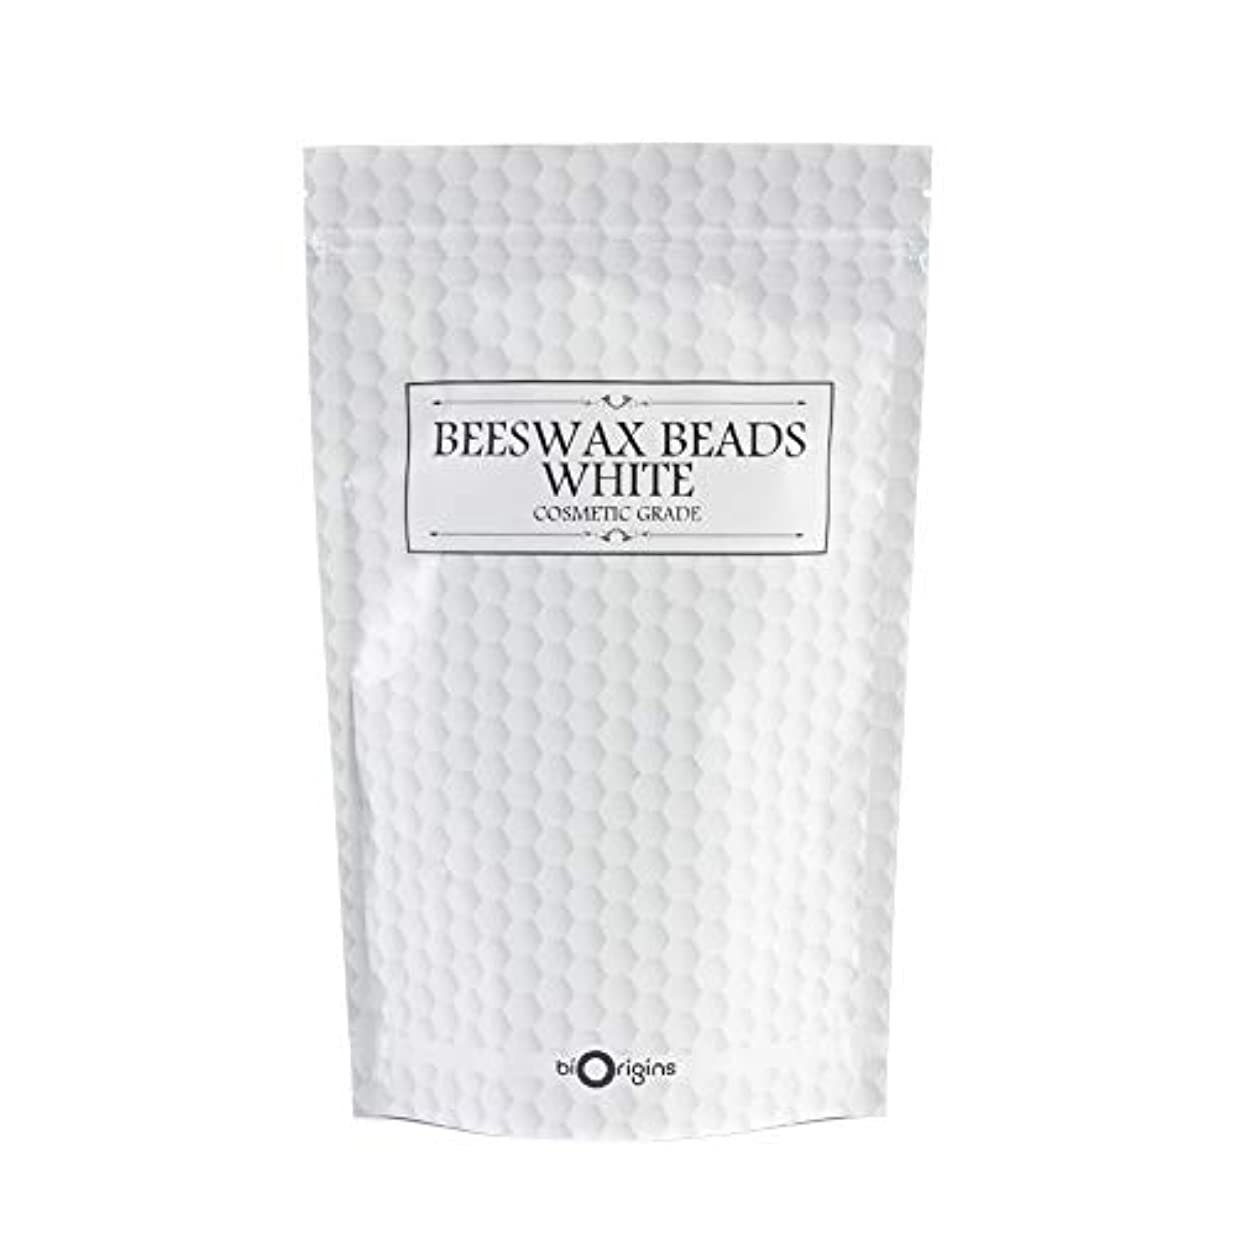 航空機証人嘆願Beeswax Beads White - Cosmetic Grade - 500g